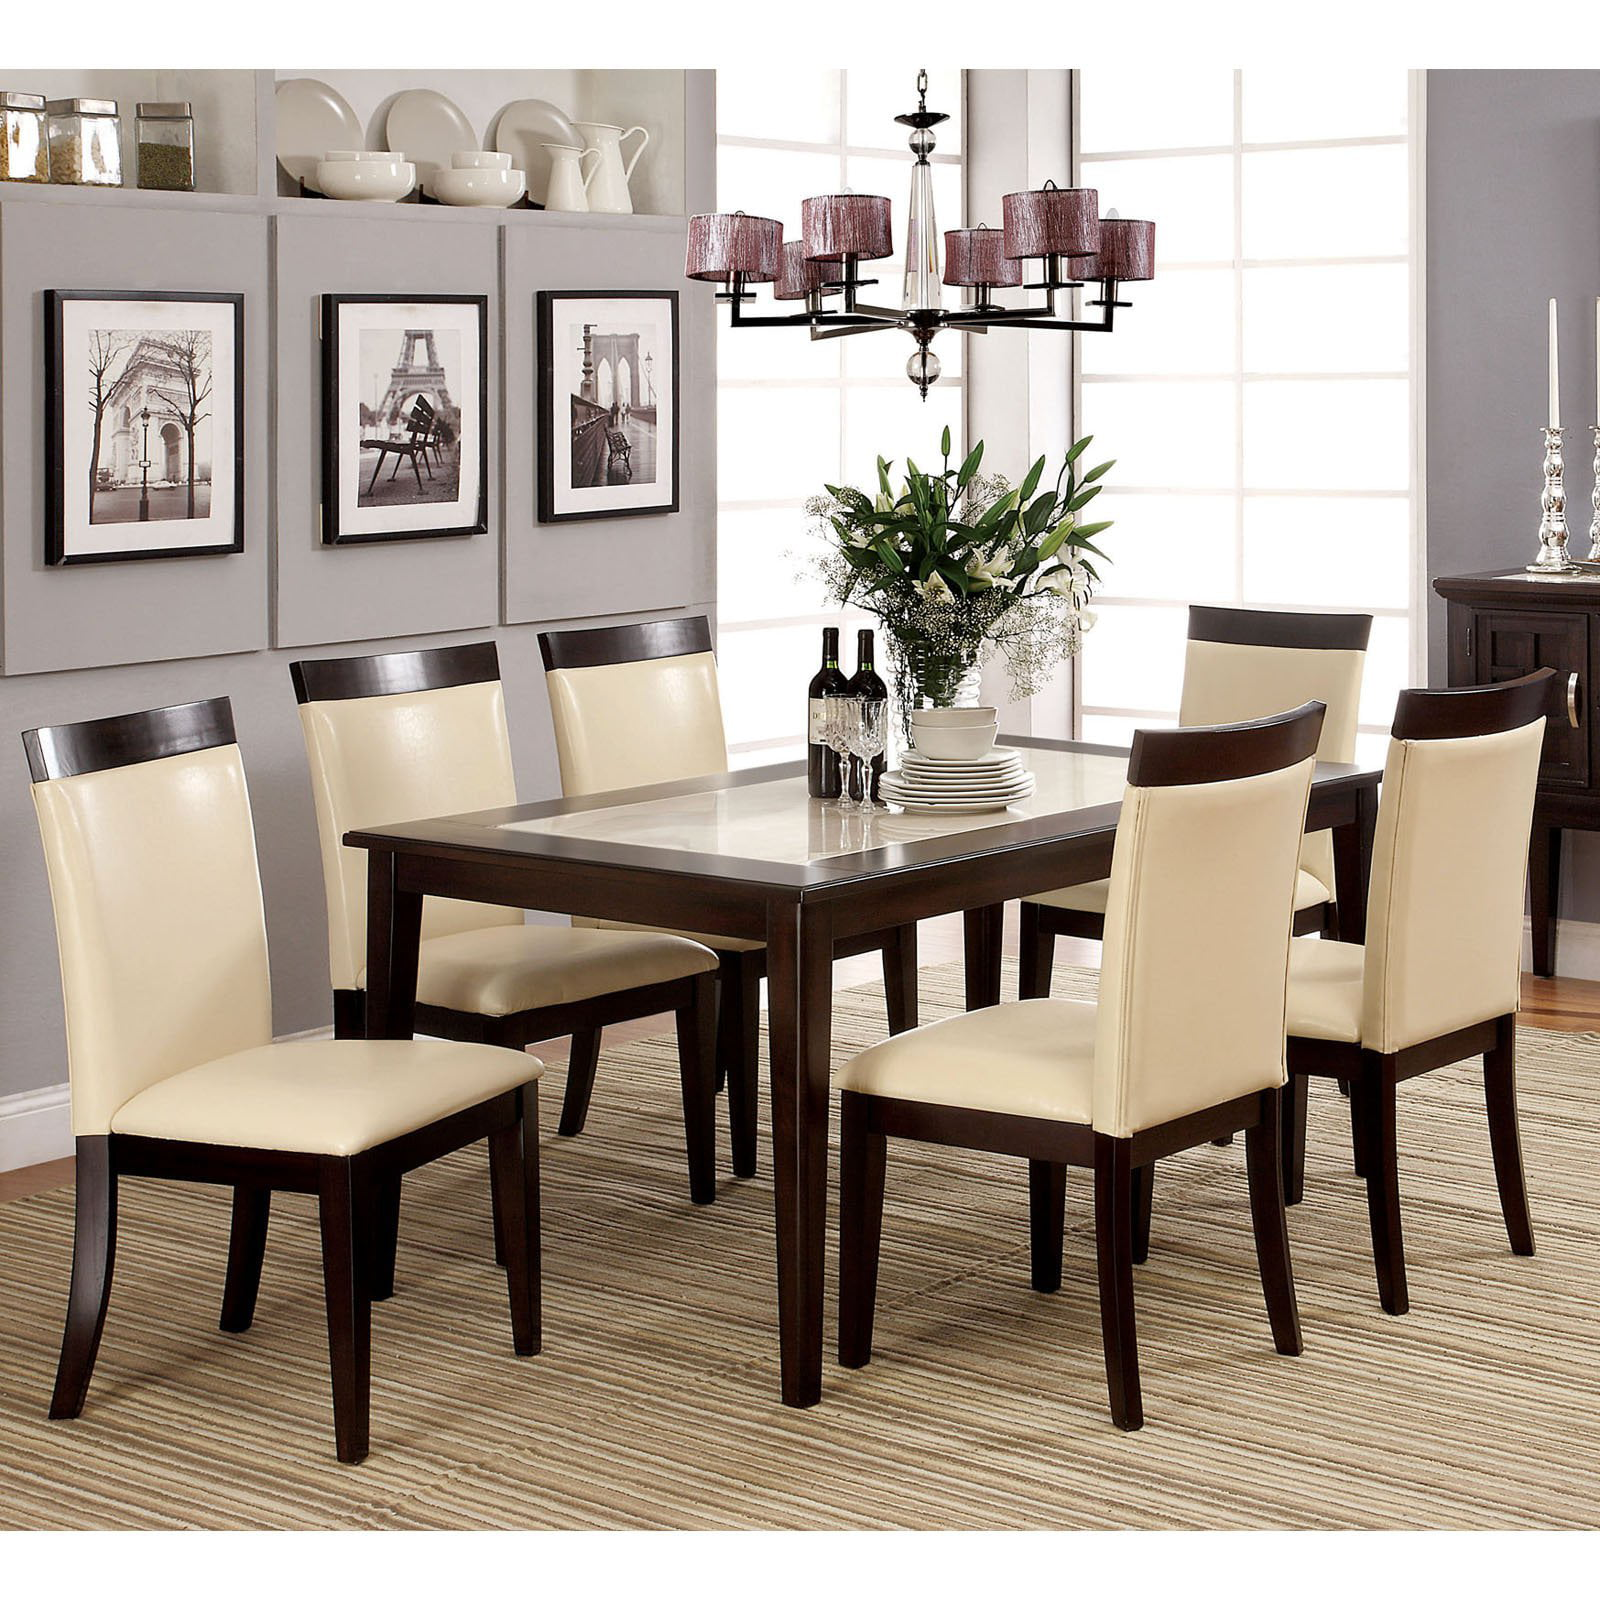 Mainstays 5 Piece Faux Marble Top Dining Set   Walmart.com